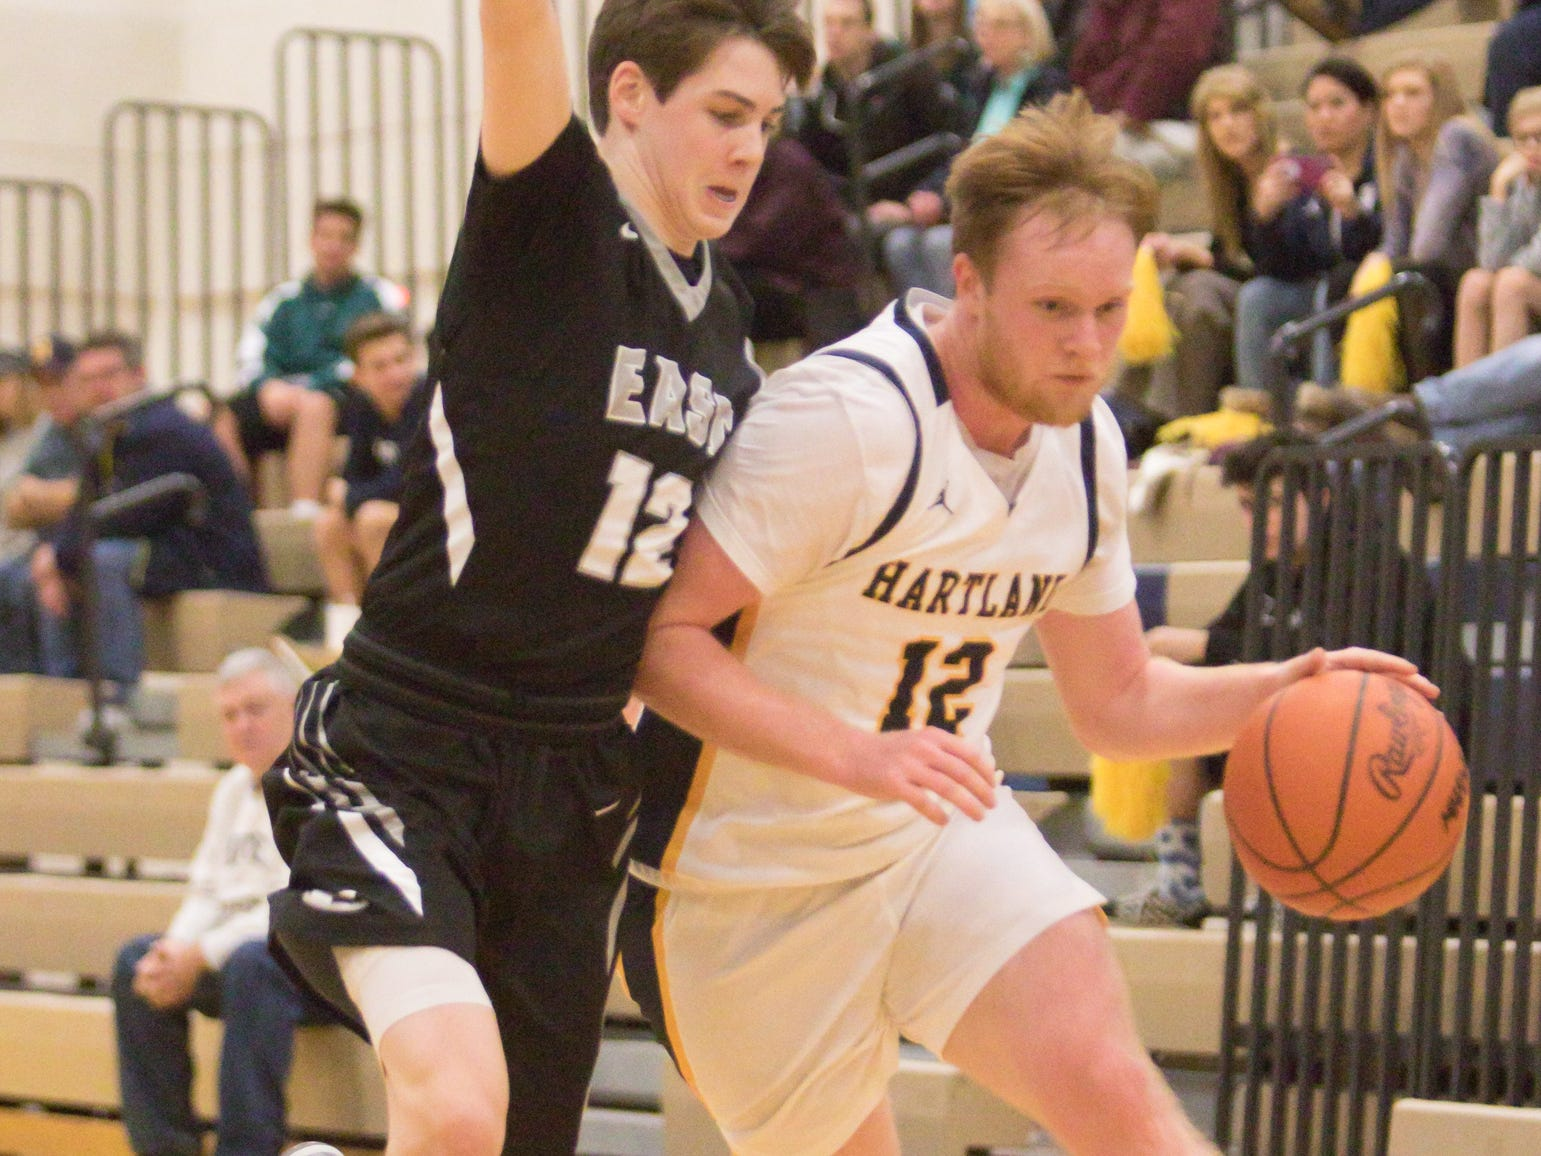 Hartland's Evan Metz dribbles past South Lyon East's Bryce Bird in the tournament game Friday, Dec. 28, 2018.